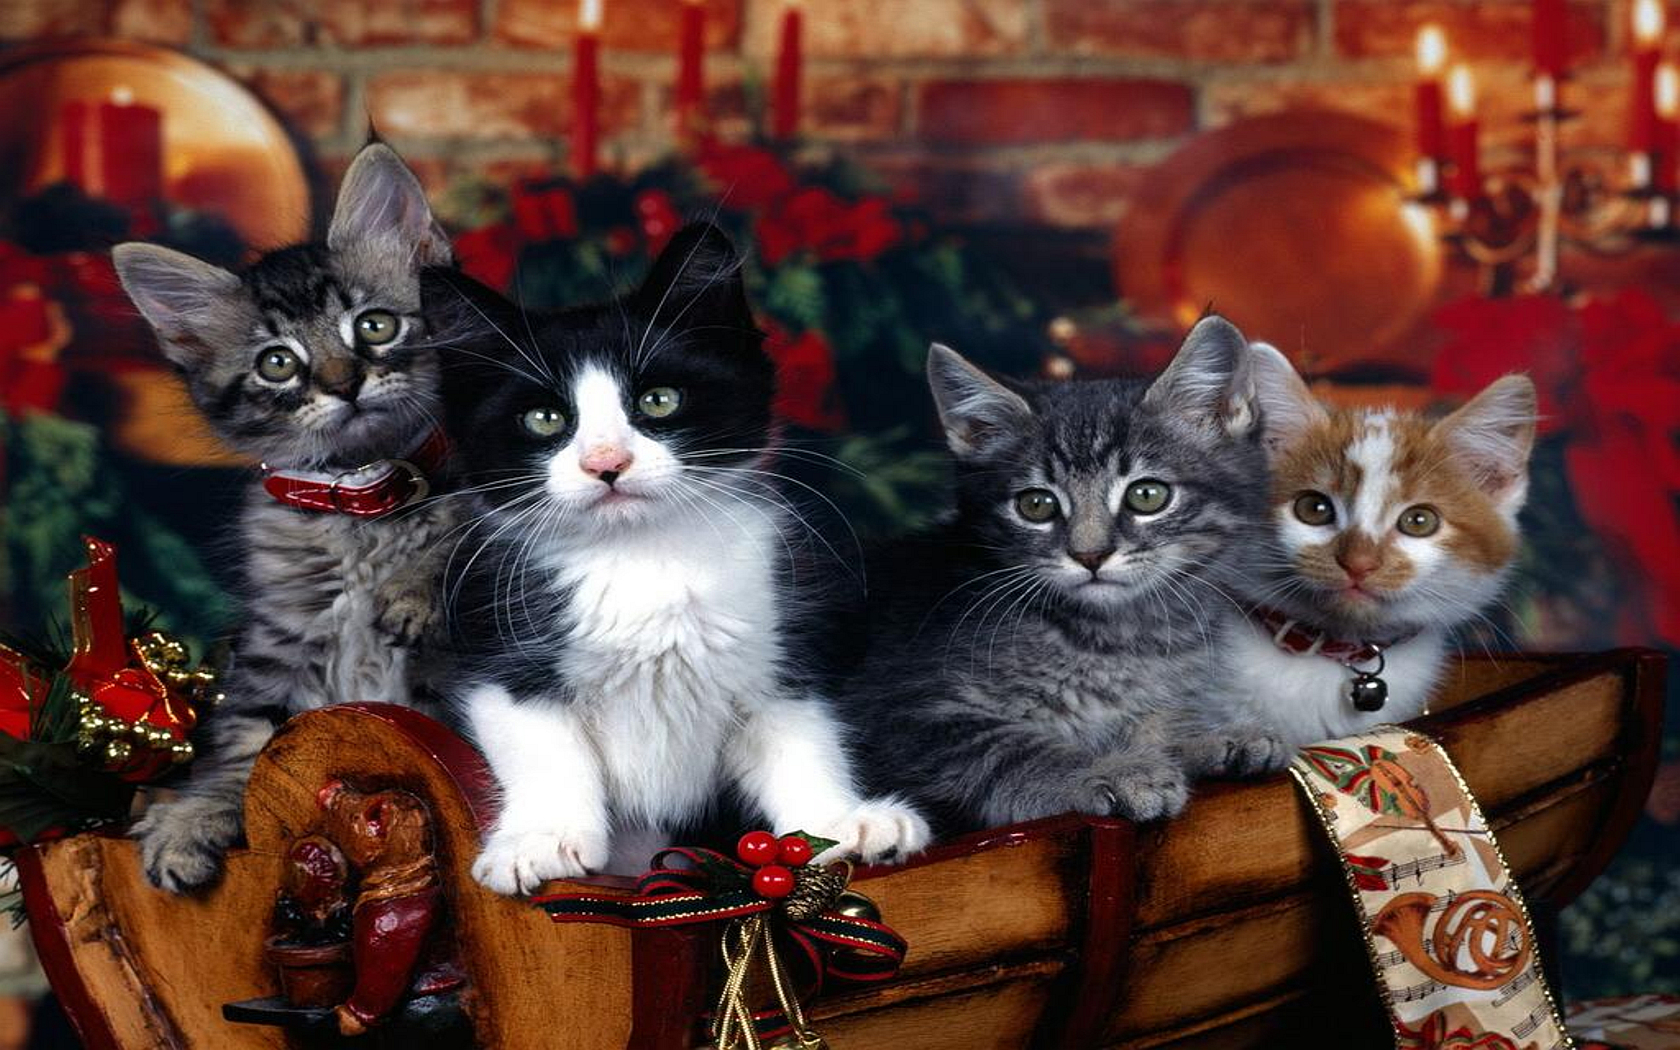 zomg xmas Kittens animal HD Wallpaper